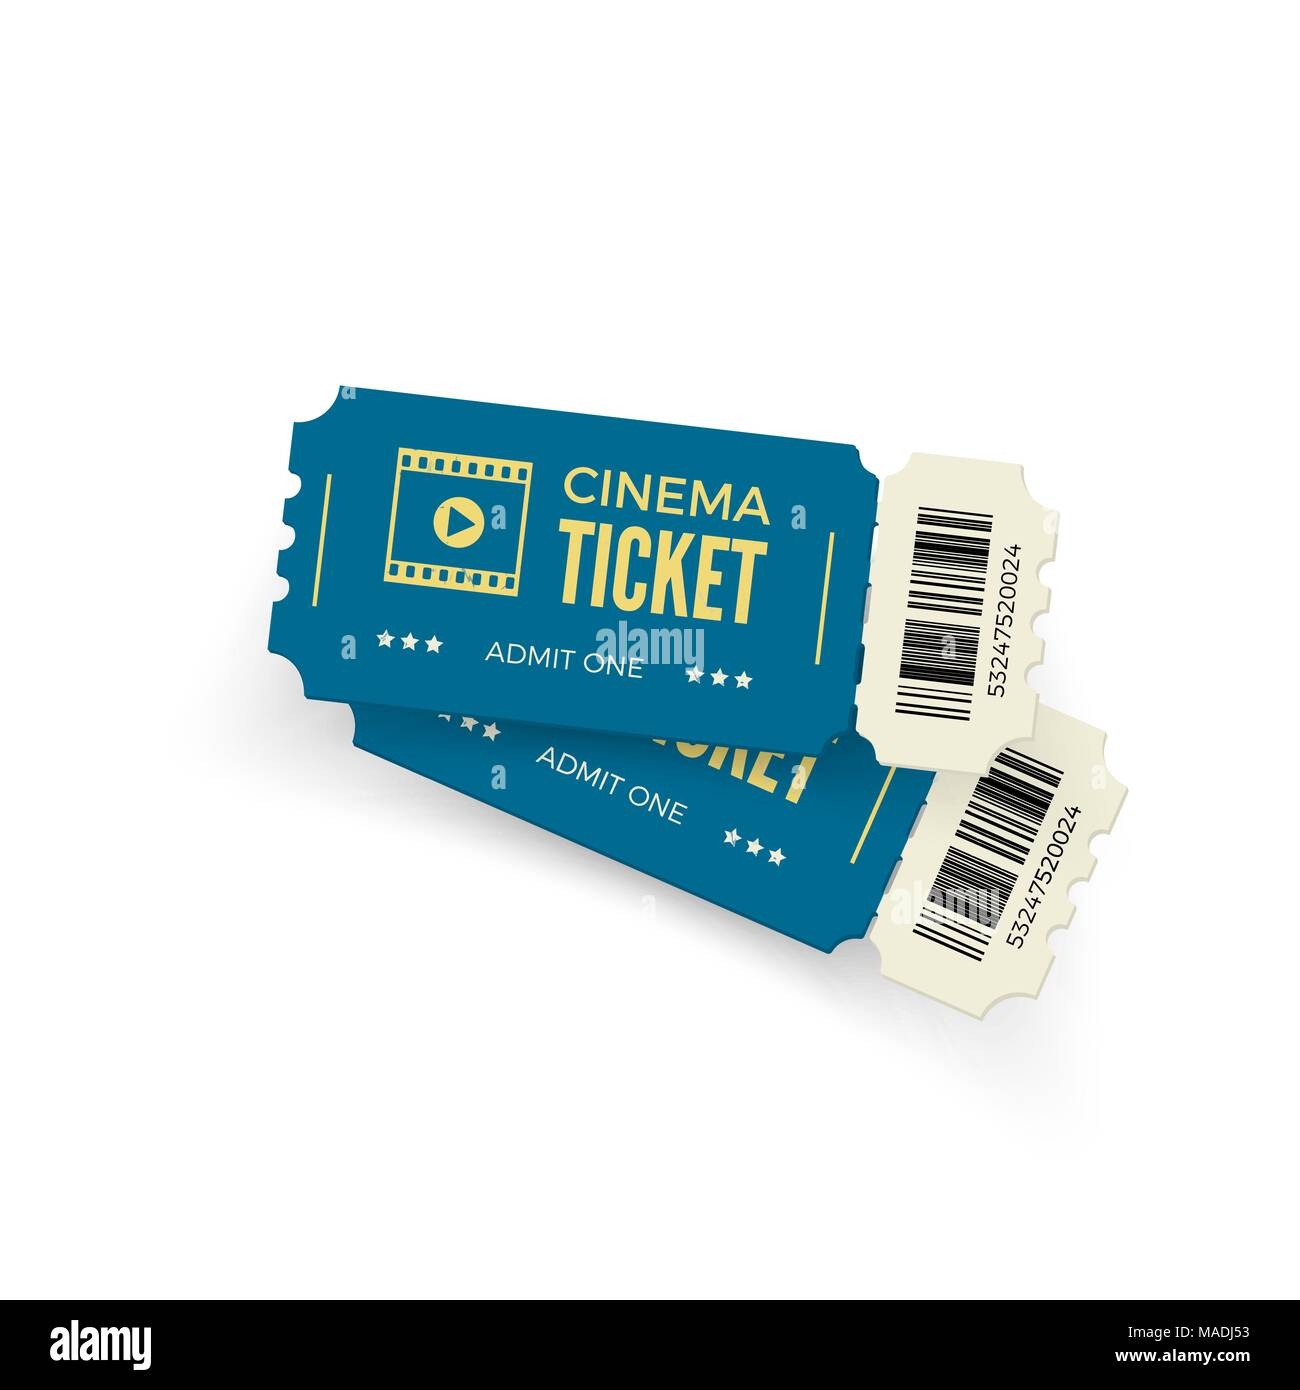 movie ticket blue cinema tickets isolated on white background